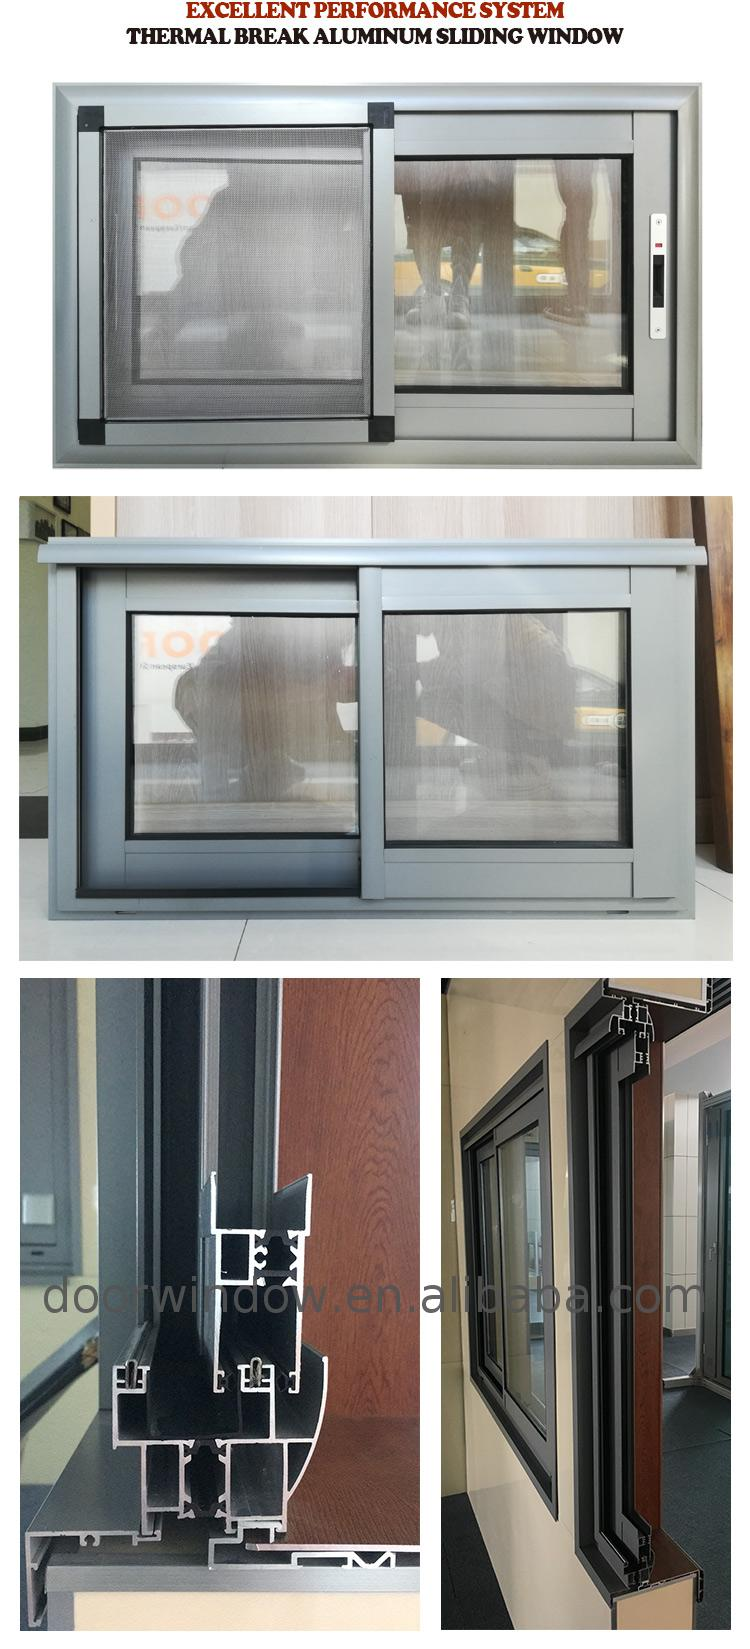 China factory supplied top quality reception desk sliding window rate of aluminium windows powder coated